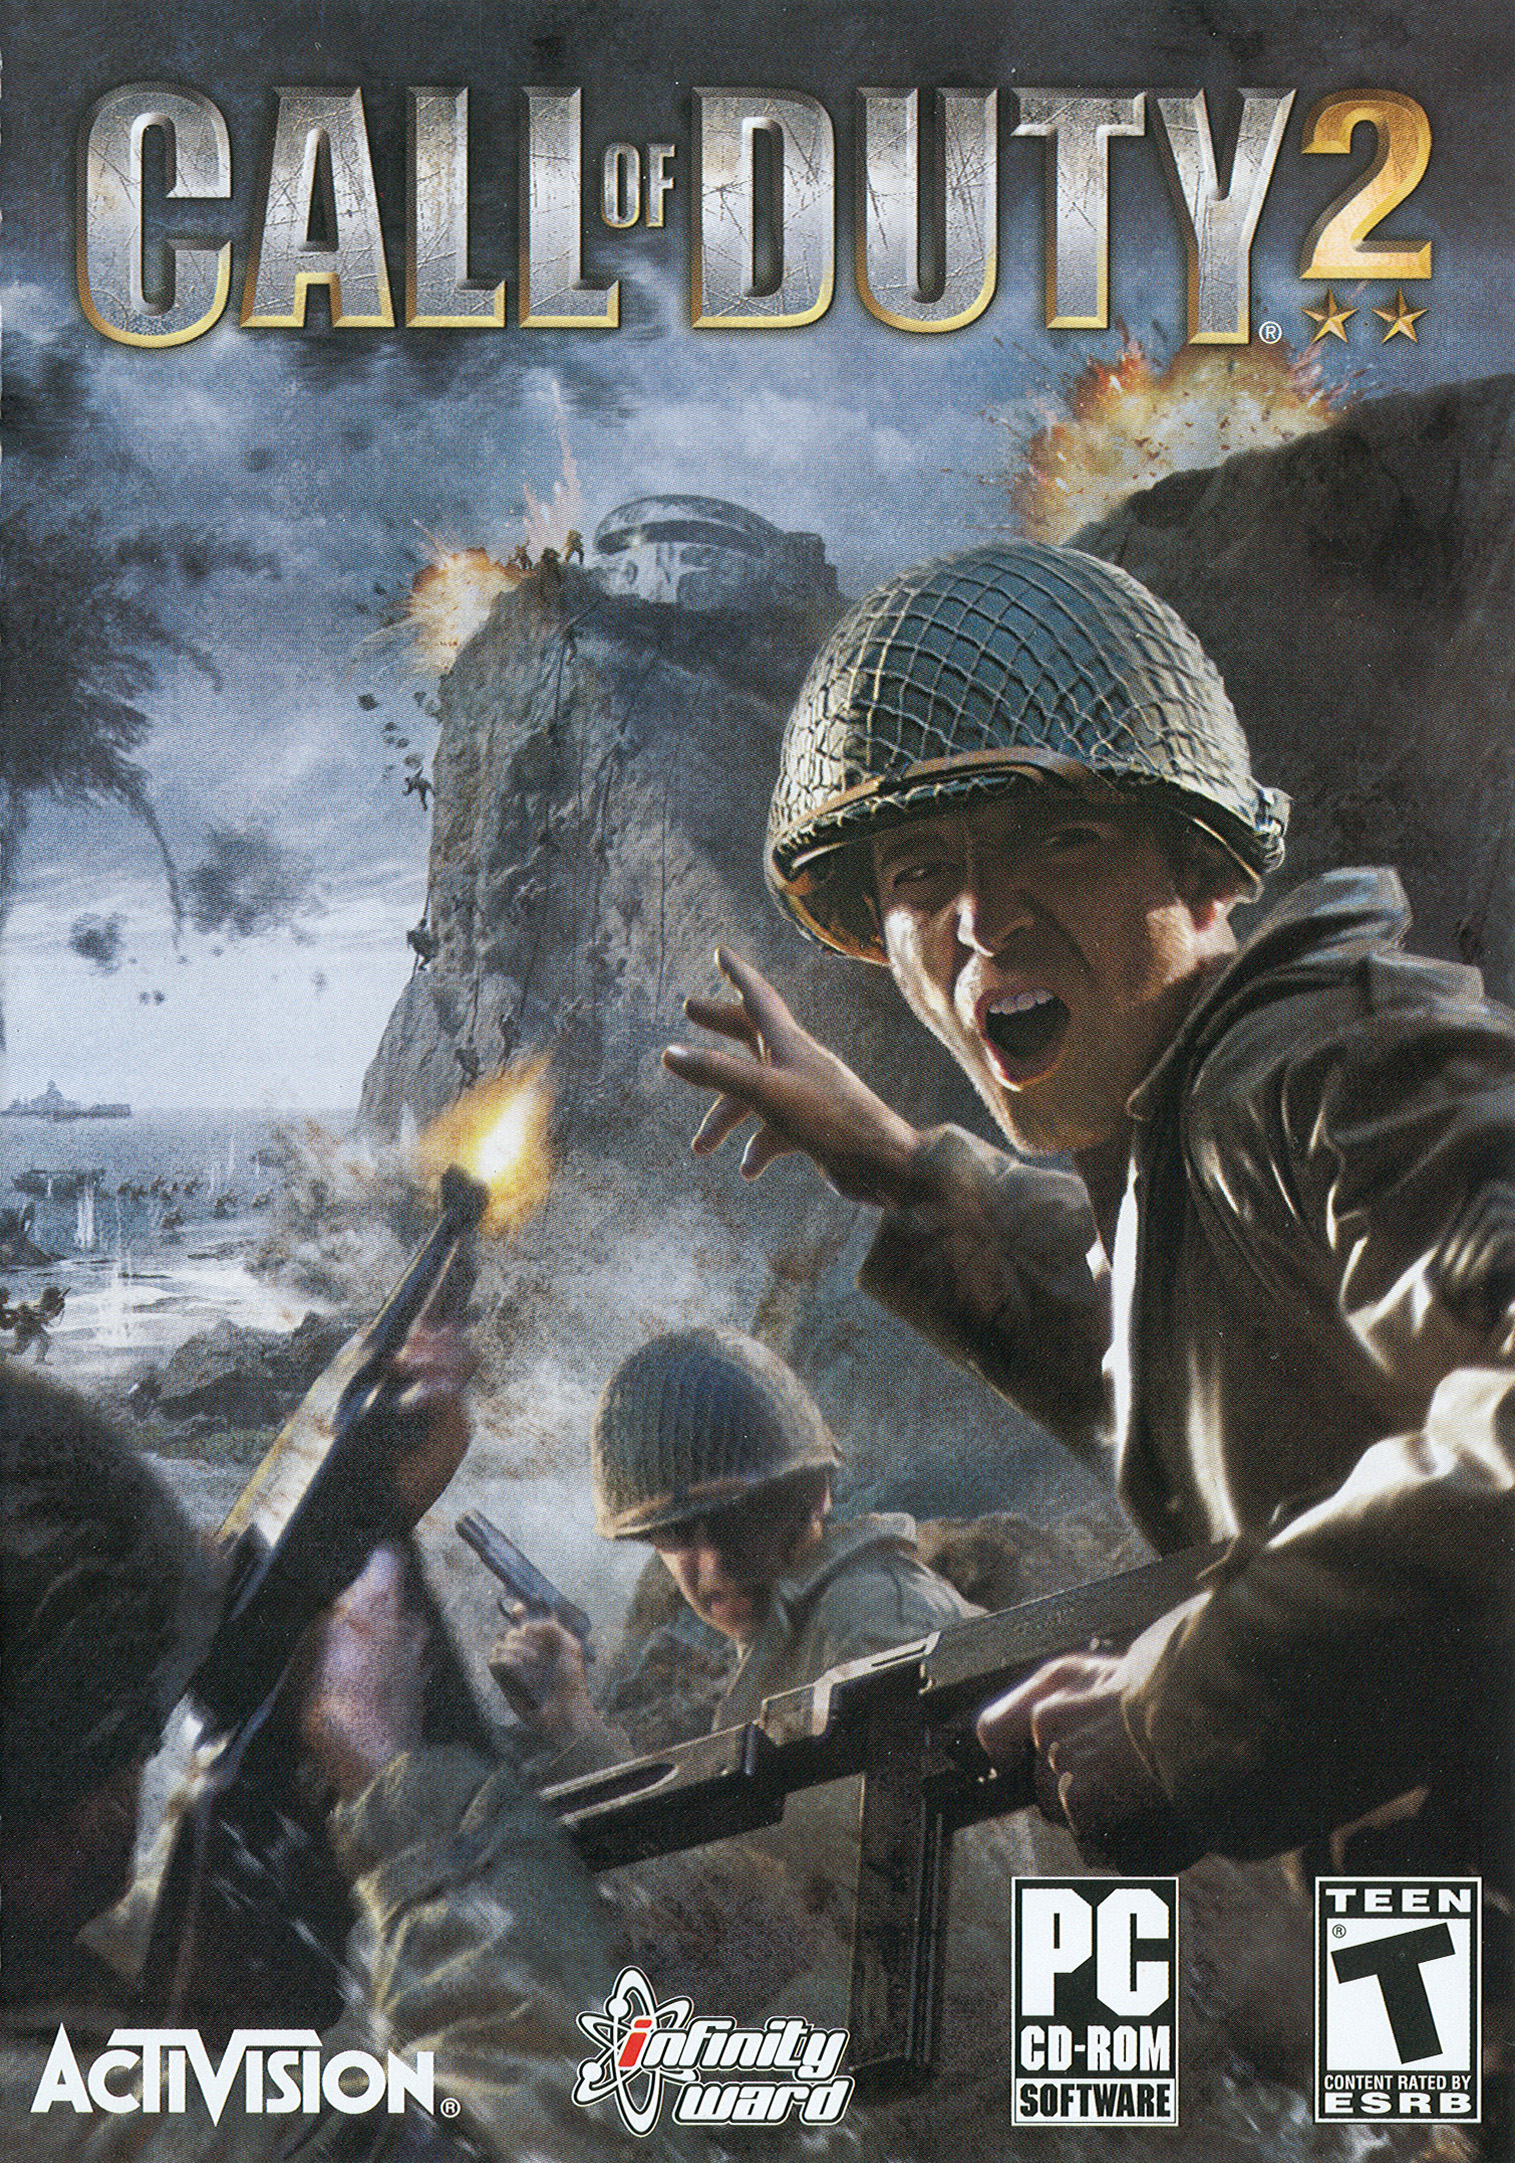 Call of Duty 2 Video Game Box Art - ID: 16869 - Image Abyss